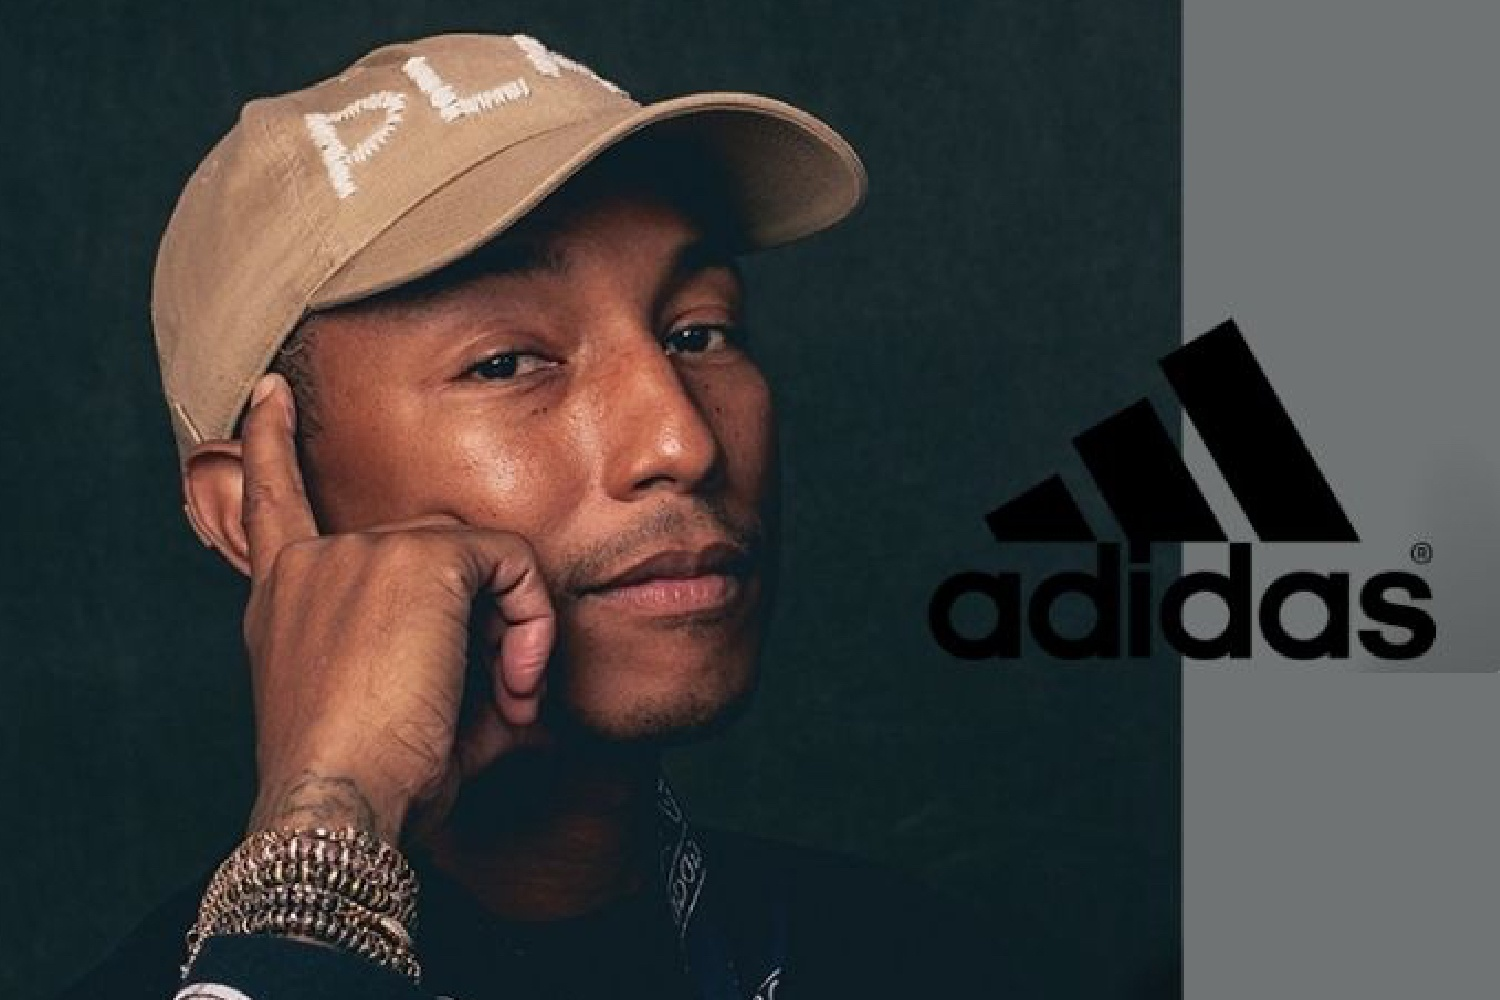 Pharrell Williams in the sneaker and street wear game